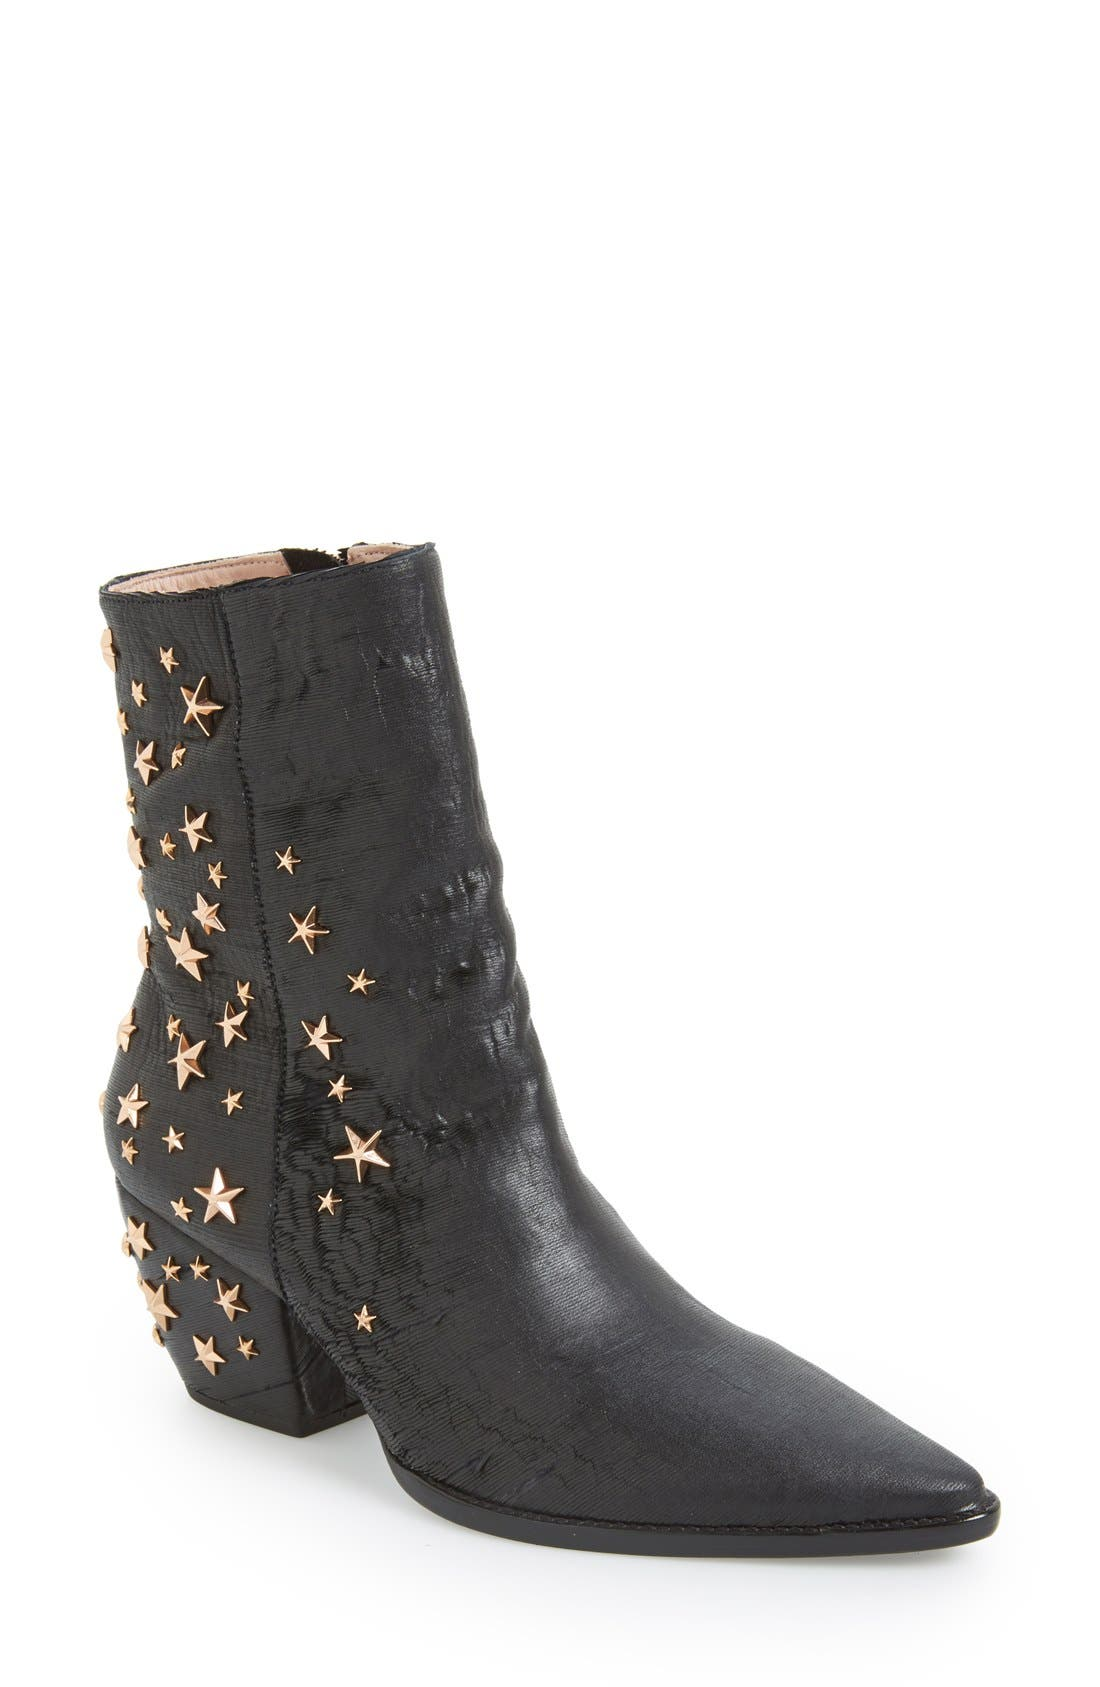 Main Image - Kate Bosworth | Matisse 'Star' Studded Mid Boot (Women)